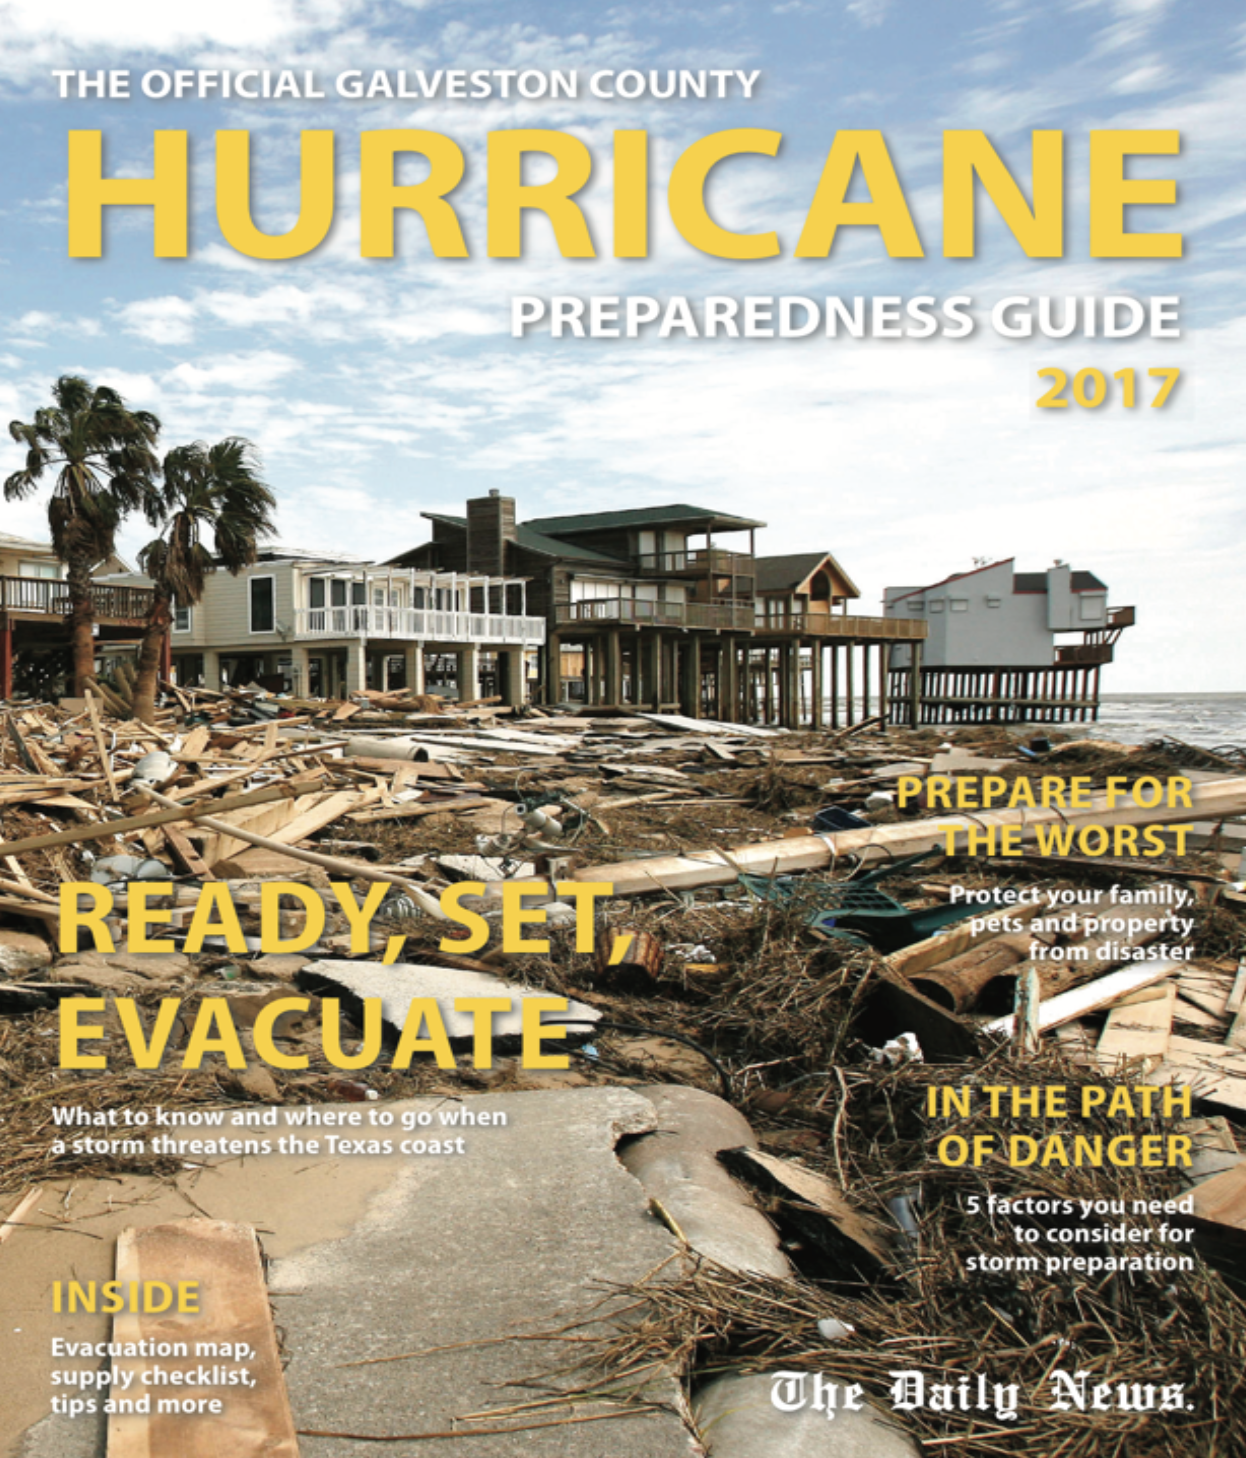 Hurricane Guide 2017